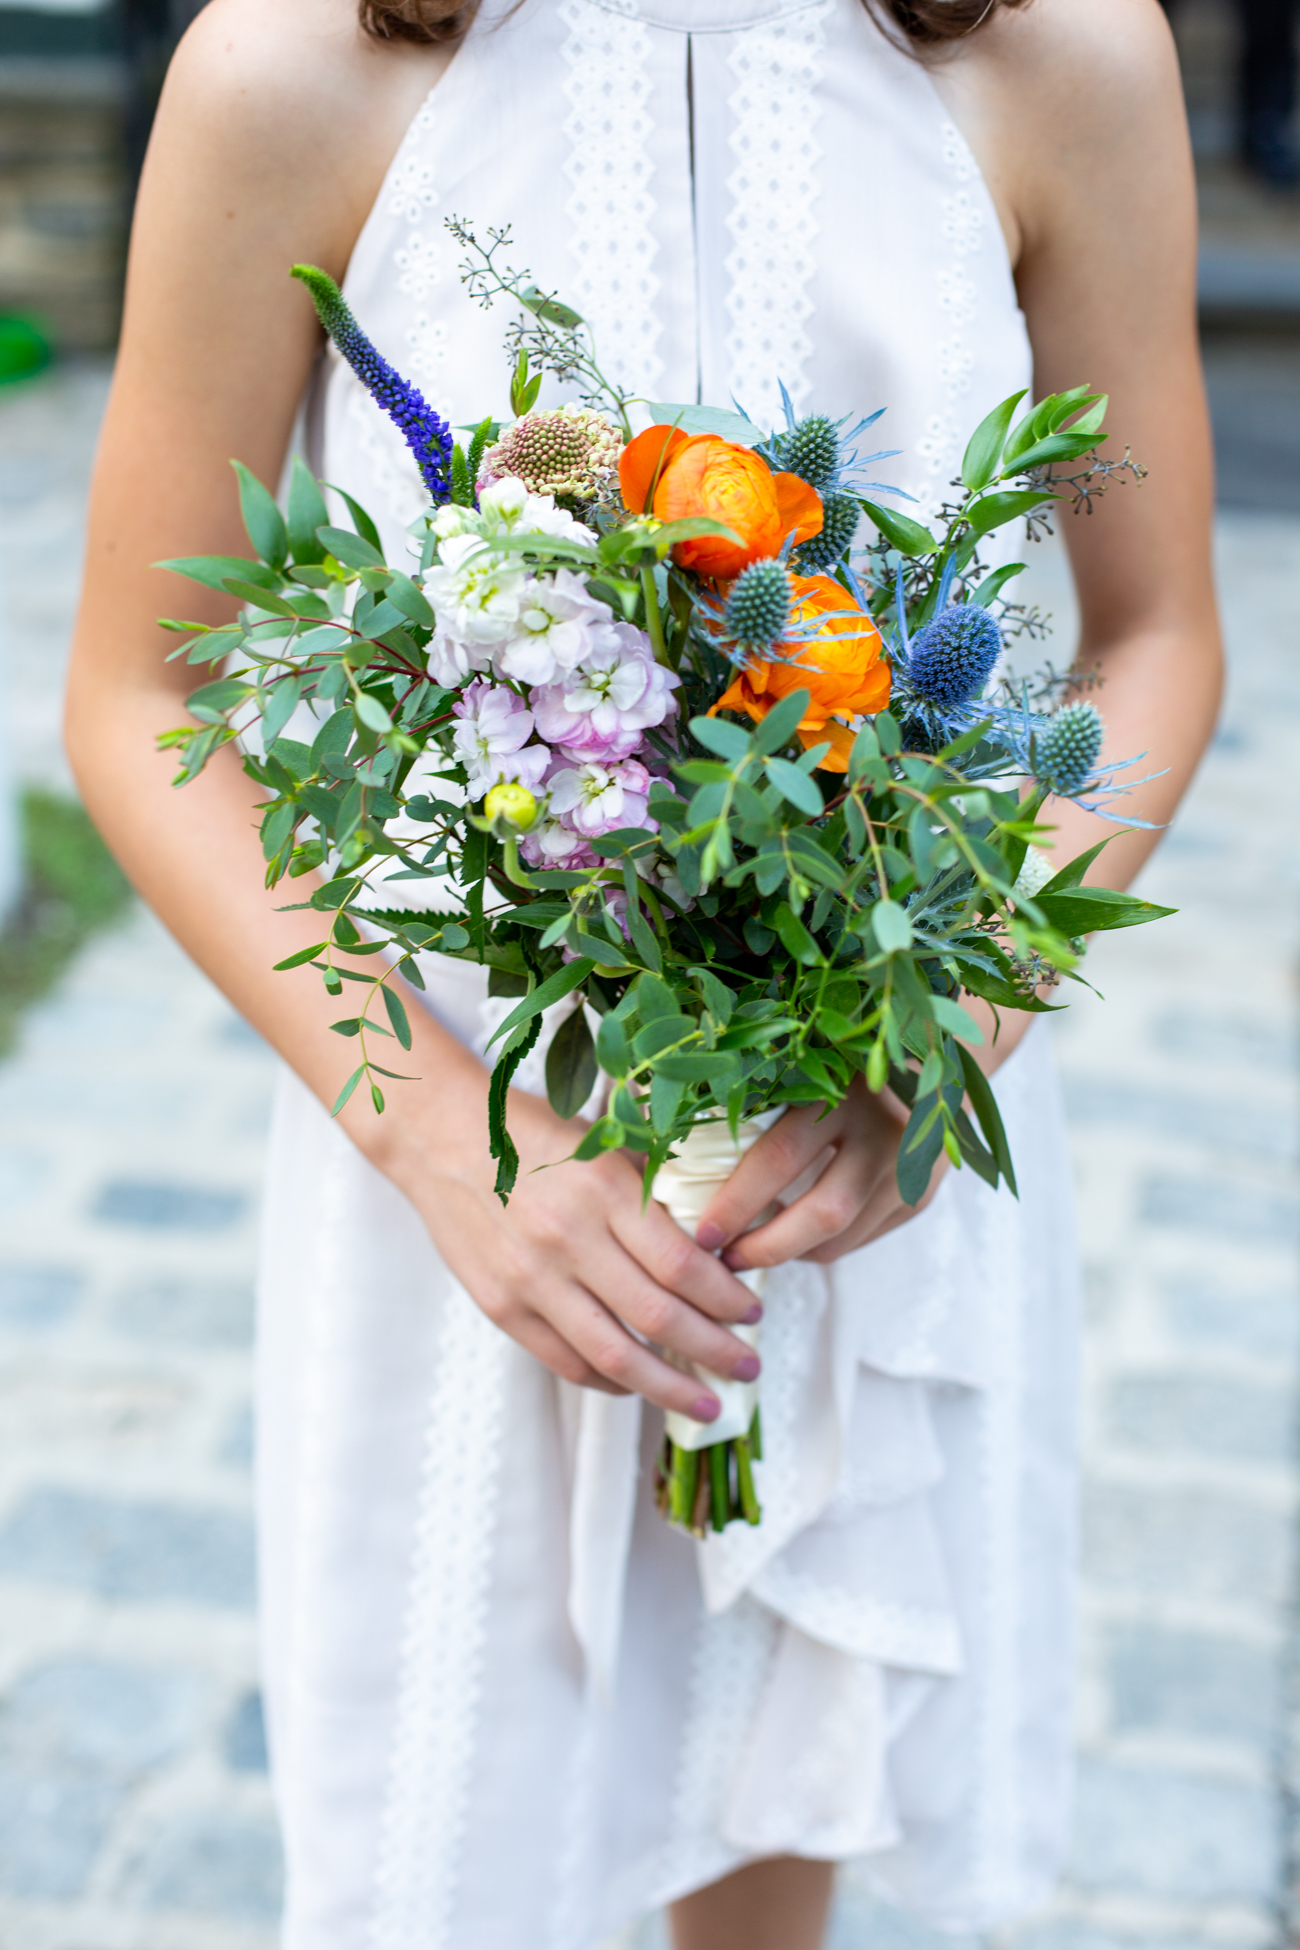 Melton-Kessler Wedding at Valley Green Inn by Avi Loren Fox LLC-7.jpg